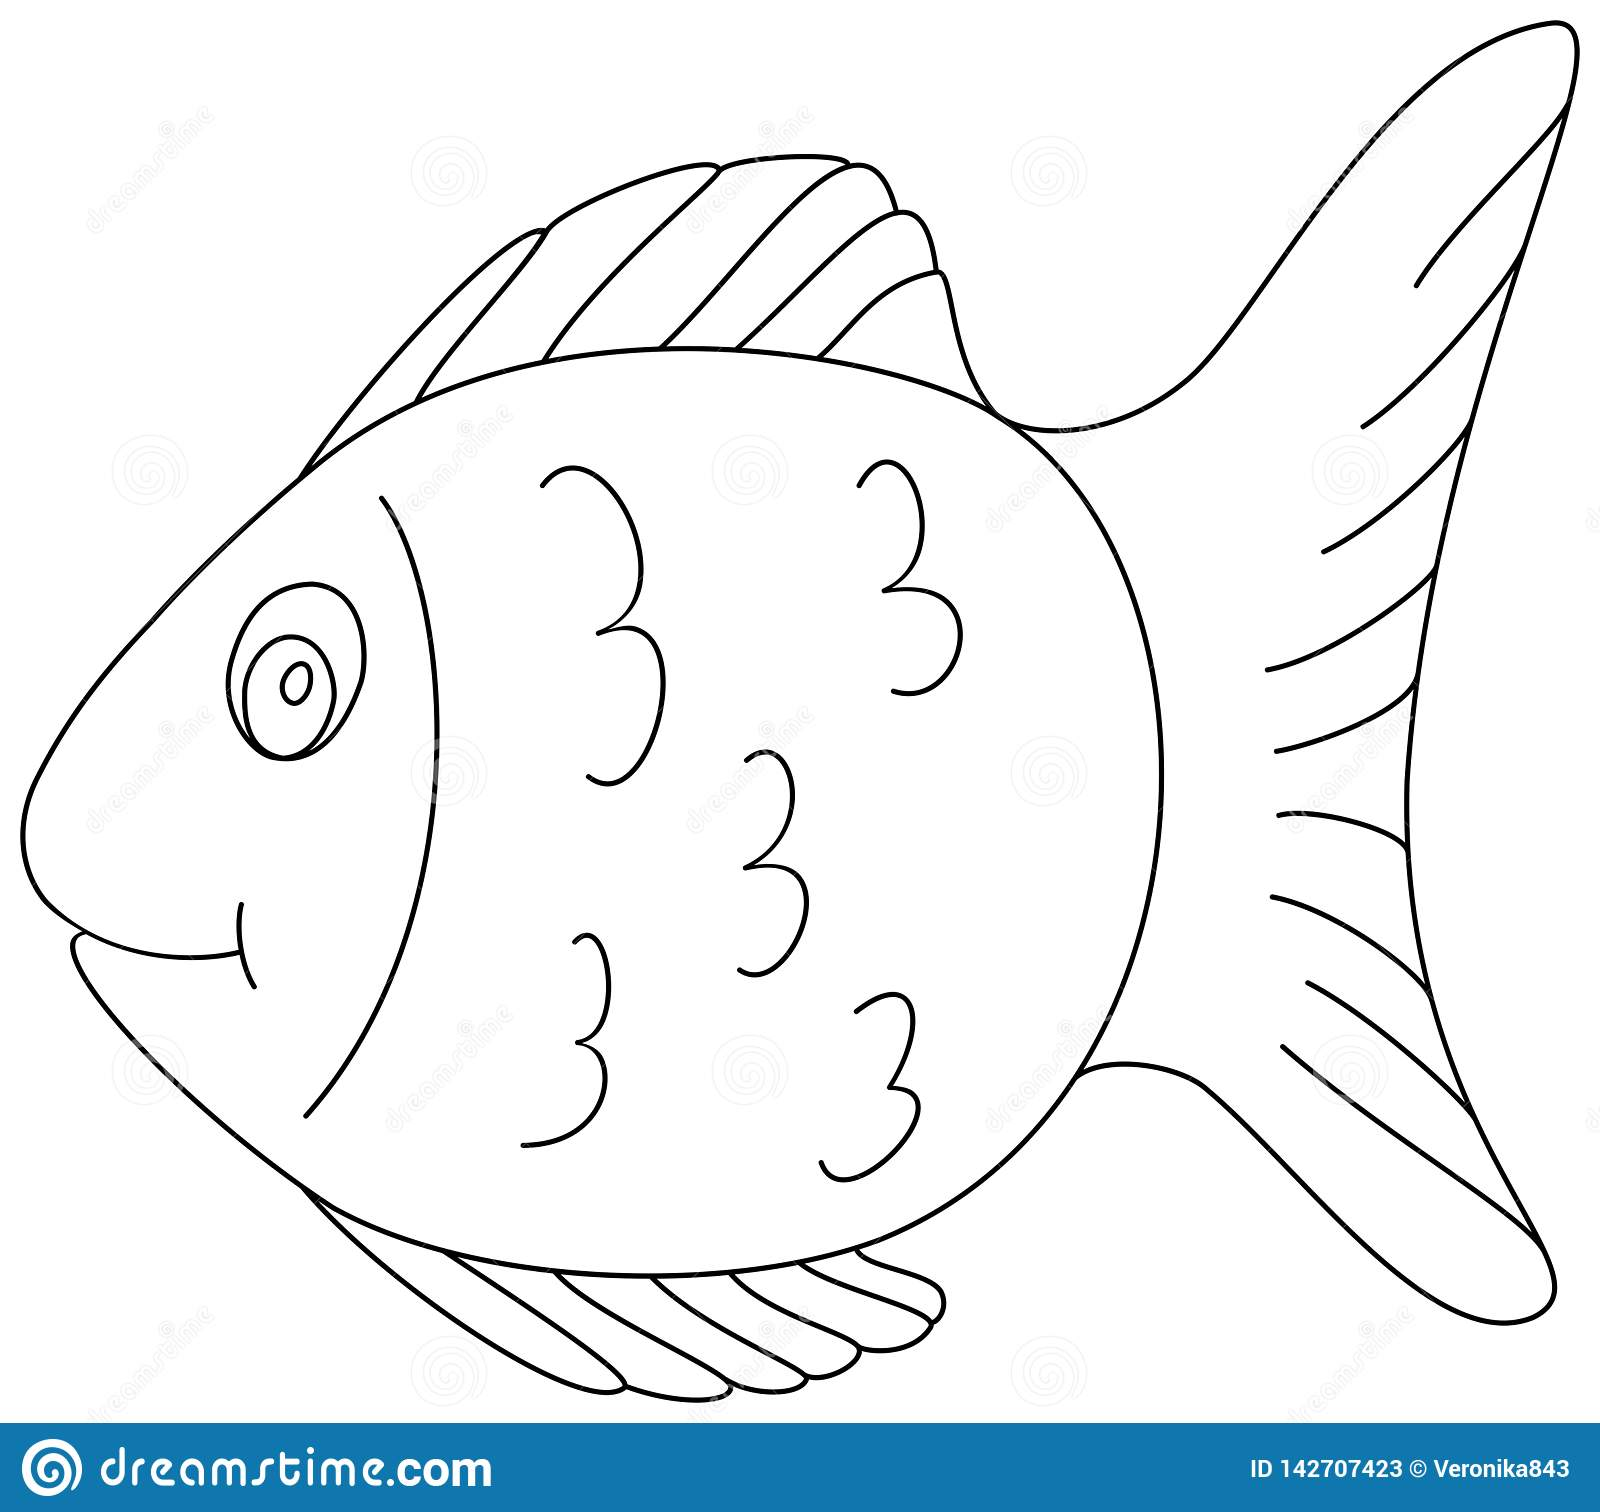 Fish Coloring Book Page 2. Outline Clipart Stock Vector.